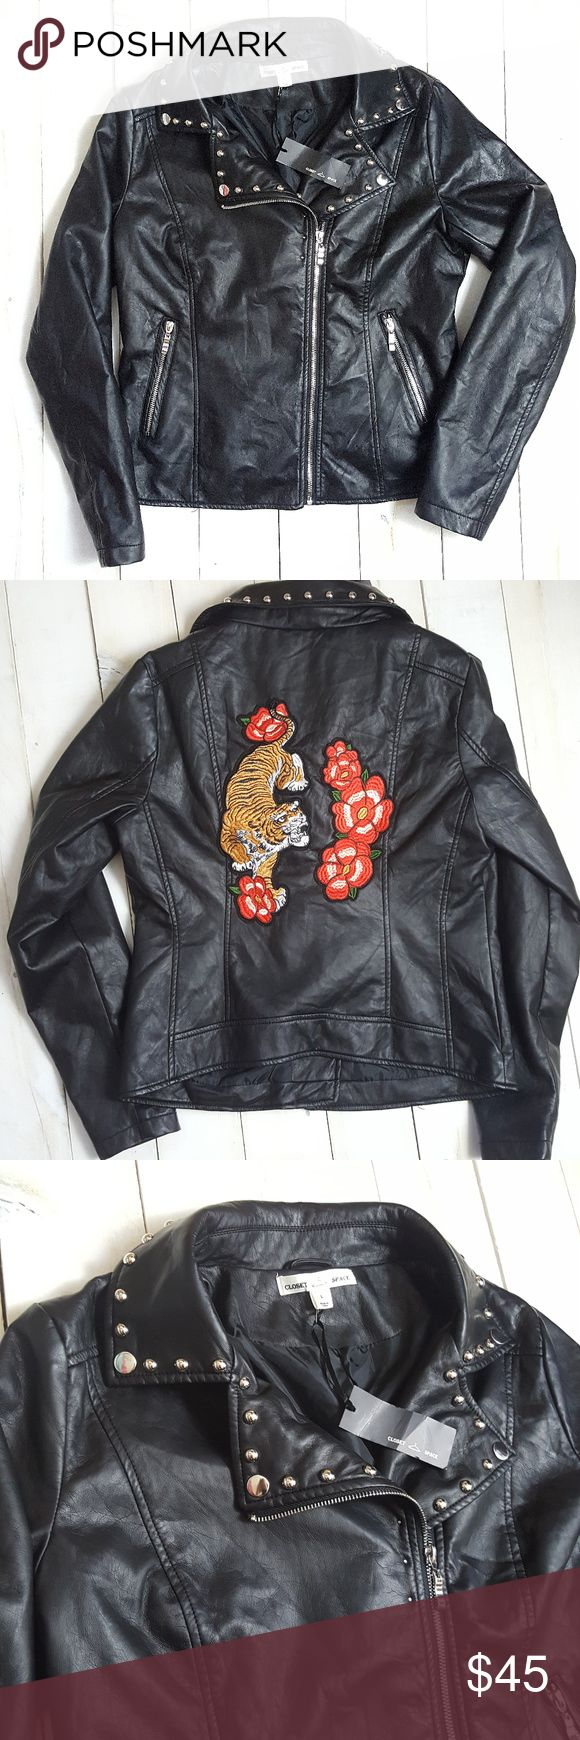 "Faux Leather Black Motorcycle Jacket Womens Large Condition: New with tags  Size: Large  Chest: 20""  Sleeve: 25""  Length: 25""  ~  All items are inspected for flaws and are stated as such in the listing. Pre-owned items are washed and are guaranteed pet/smoke-free.  Customer satisfaction is very important, so if you ever have an issue with your order, please feel free to message me and I will be happy to assist you.  If your item does not fit or you are not satisfied, you may return it within…"